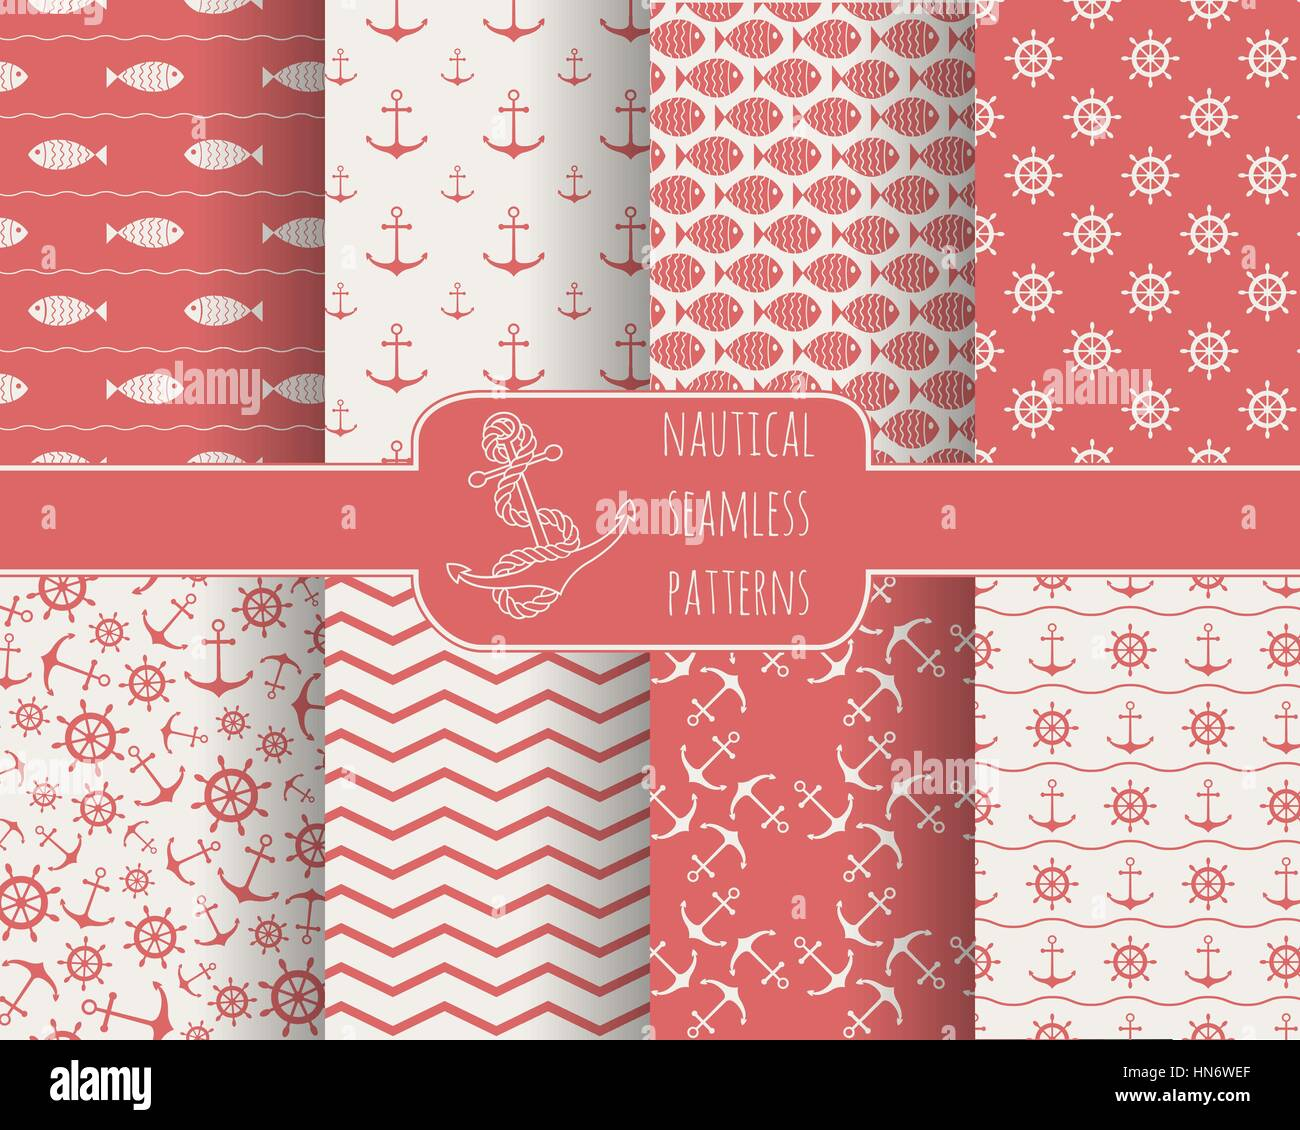 Seamless Nautical Patterns Set Design Elements For Wallpaper Baby Stock Vector Image Art Alamy